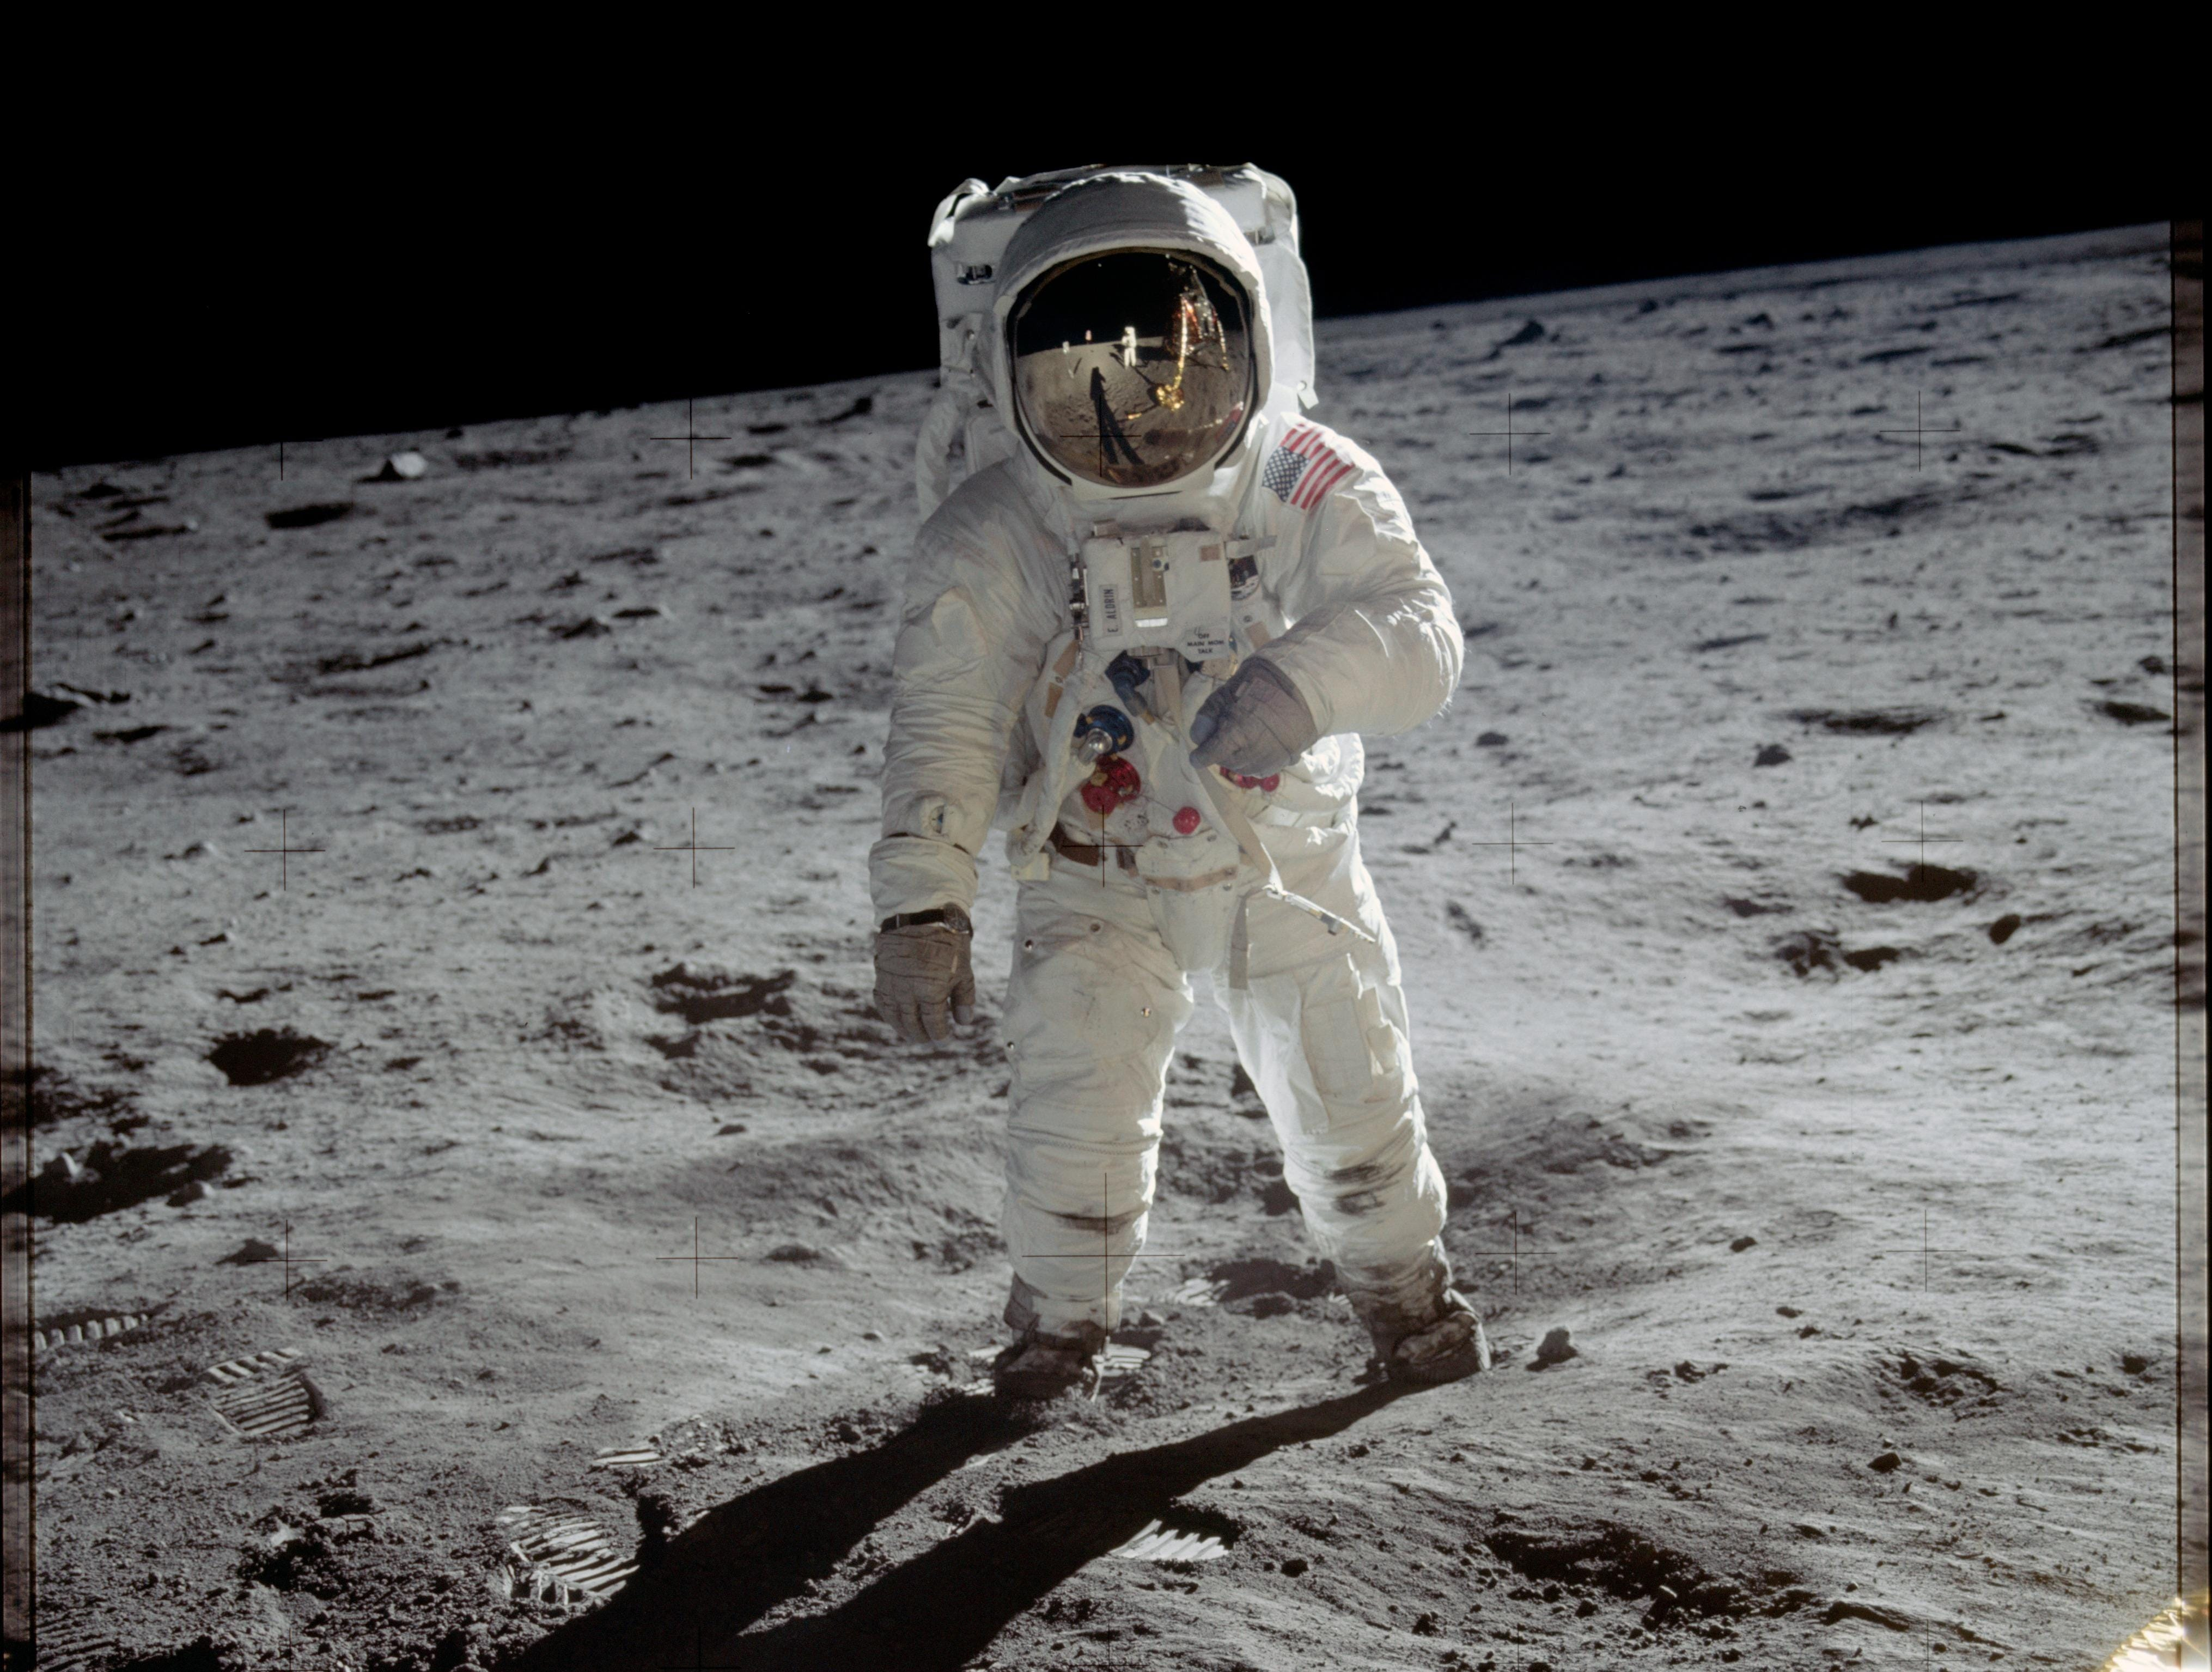 Astronaut Buzz Aldrin walks on the surface of the moon near the leg of the lunar module Eagle during the Apollo 11 mission. Mission commander Neil Armstrong took this photograph with a 70mm lunar surface camera.